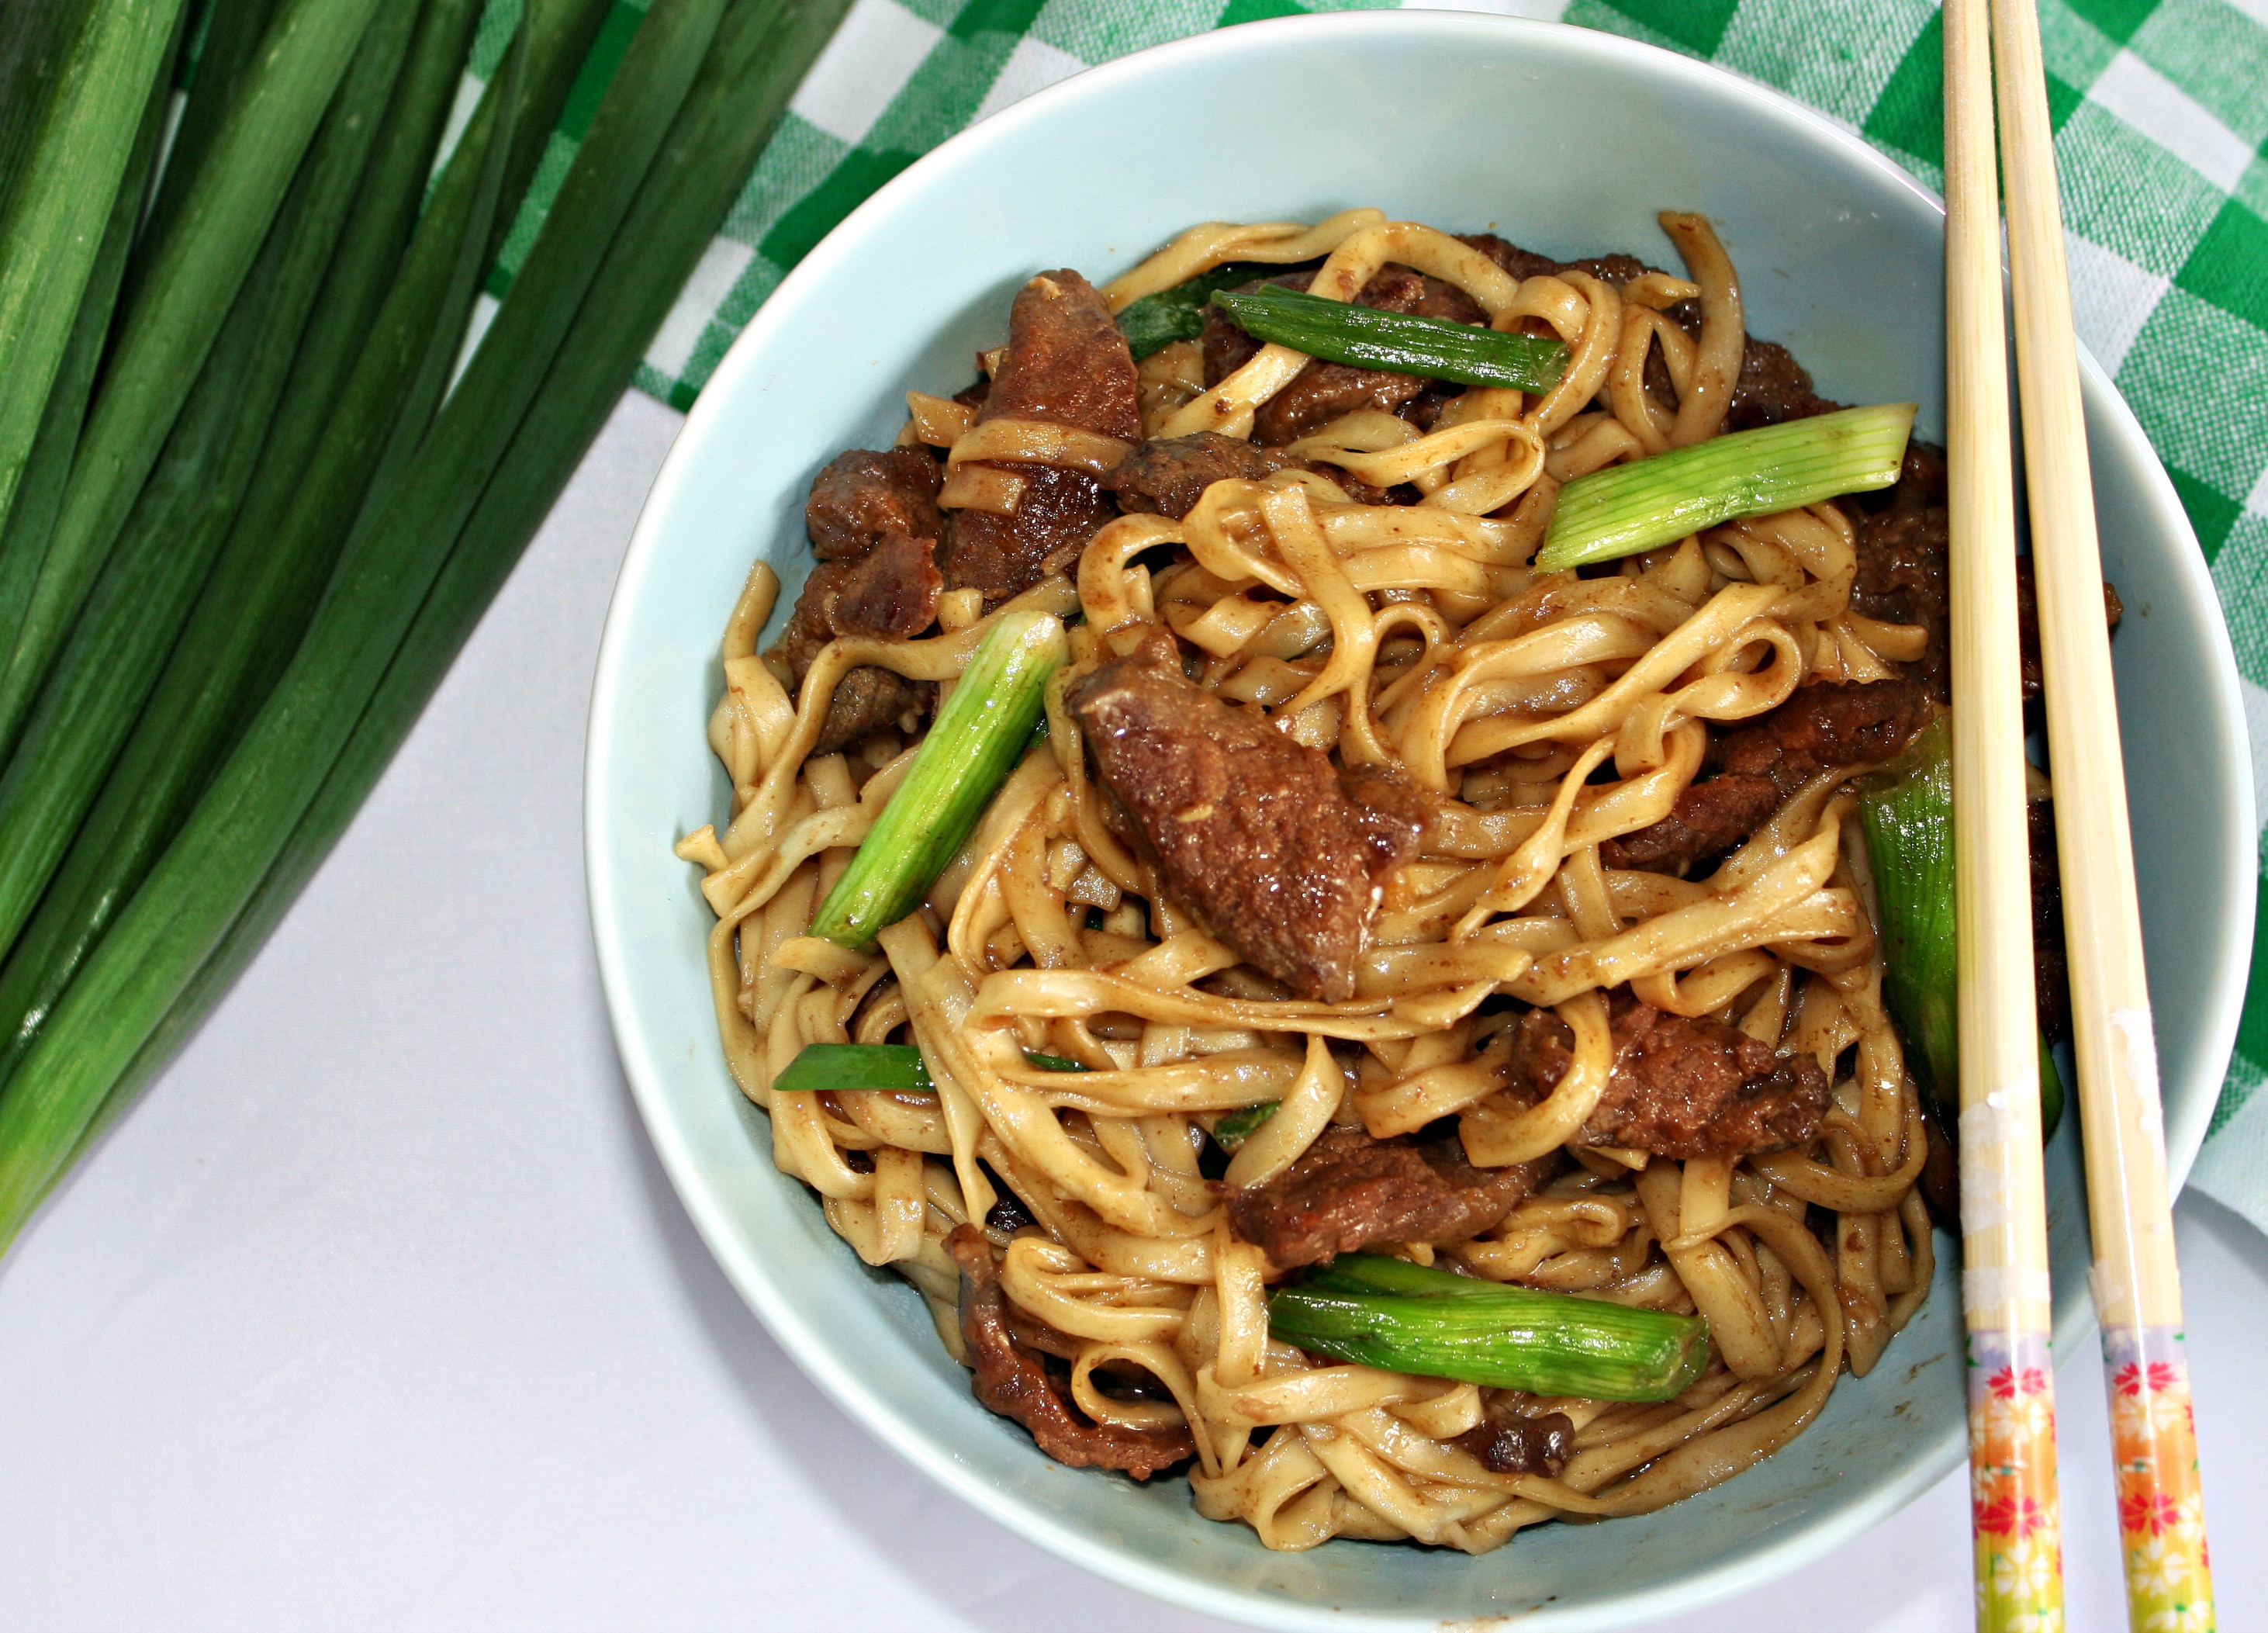 How To Make Beef And Noodles  Beef with Noodles Asian Style